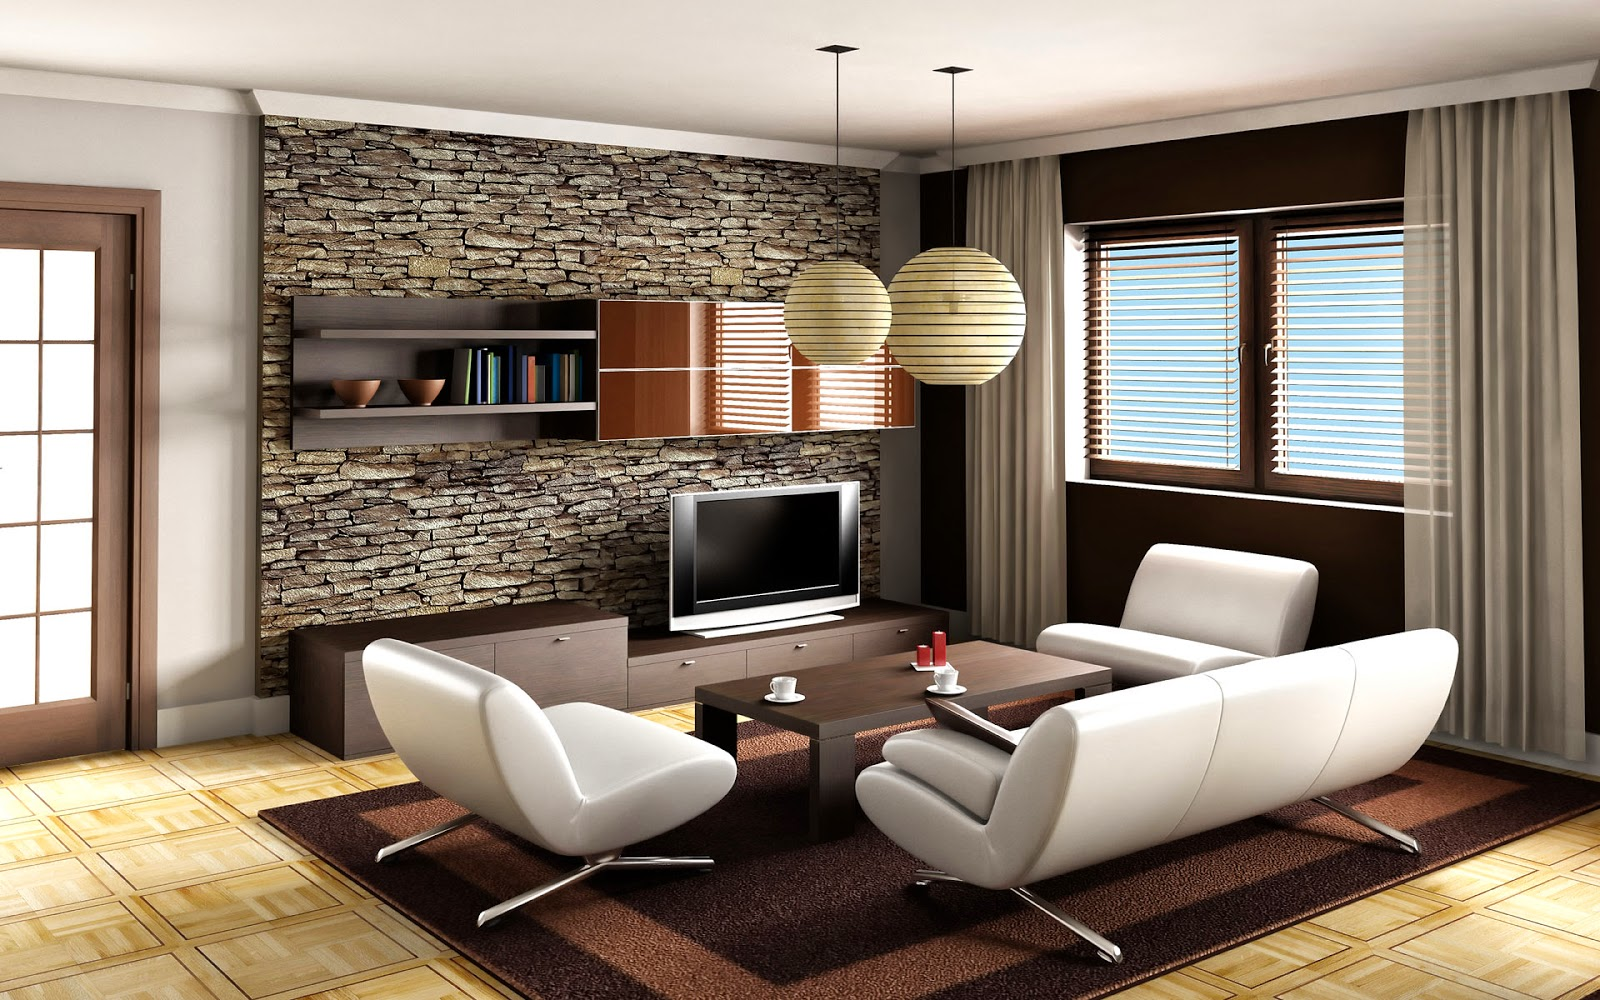 2 living room decor ideas brown leather sofa home design hd wallpapers - Living room sectional design ideas ...